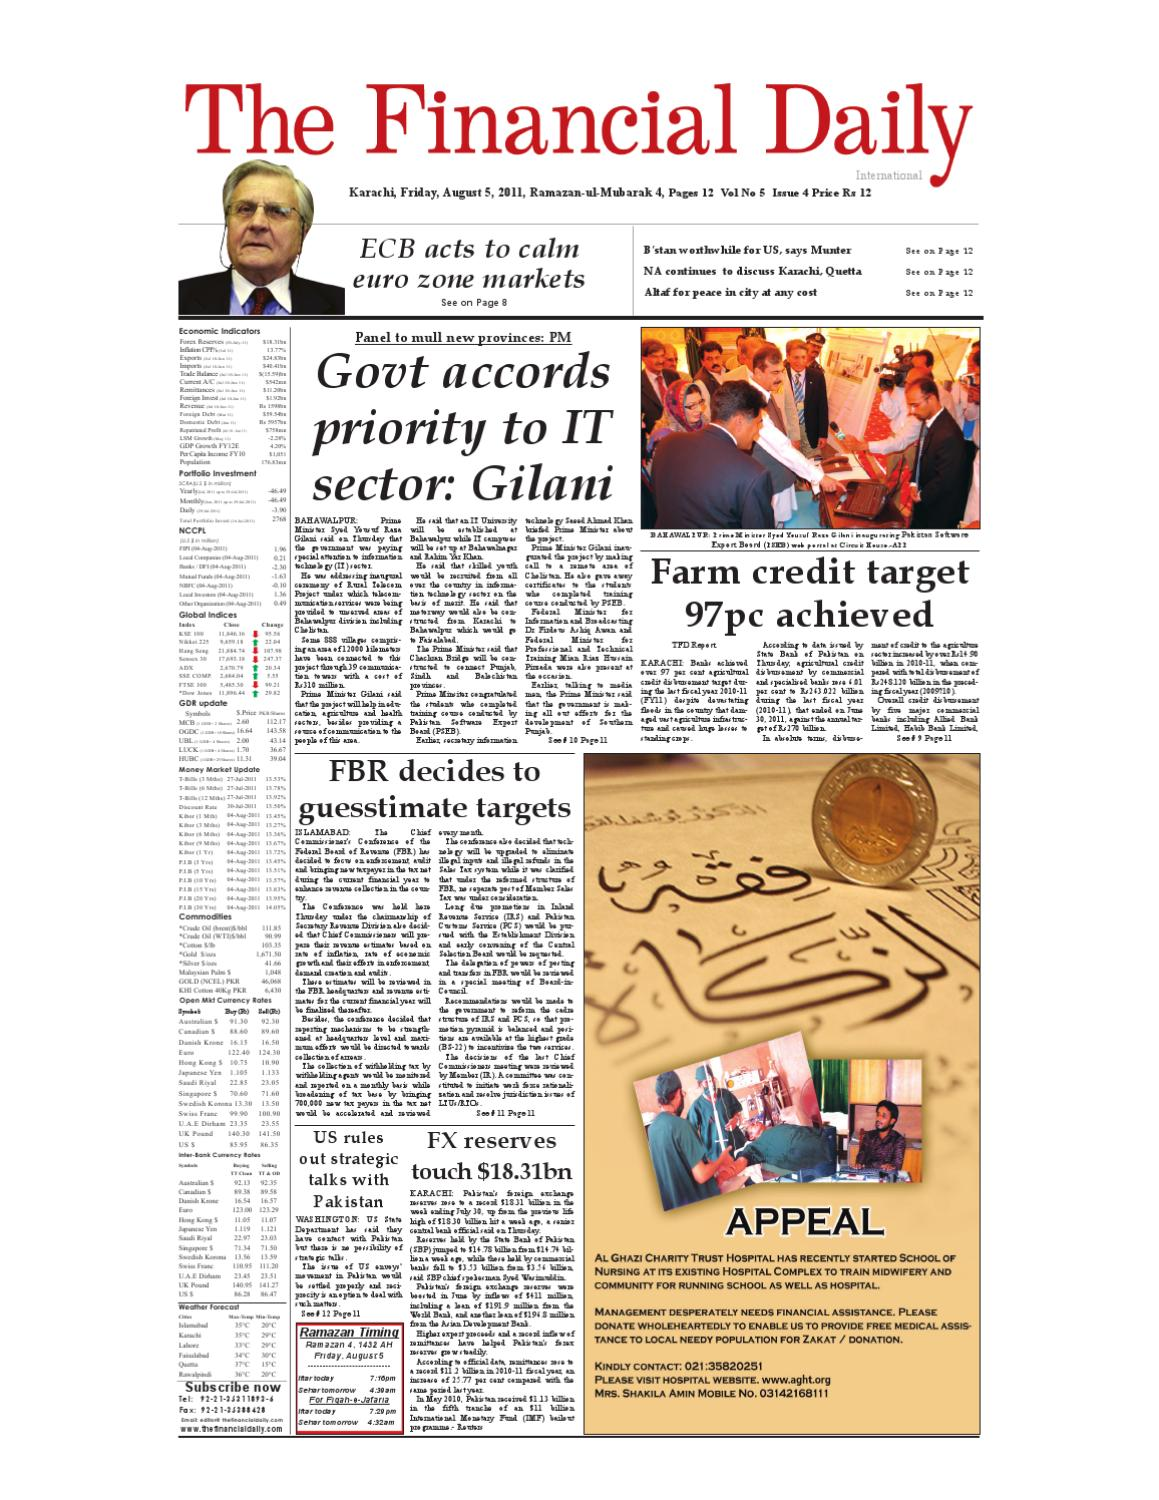 thefinancialdaily-epaper-5-08-2011 by The Financial Daily